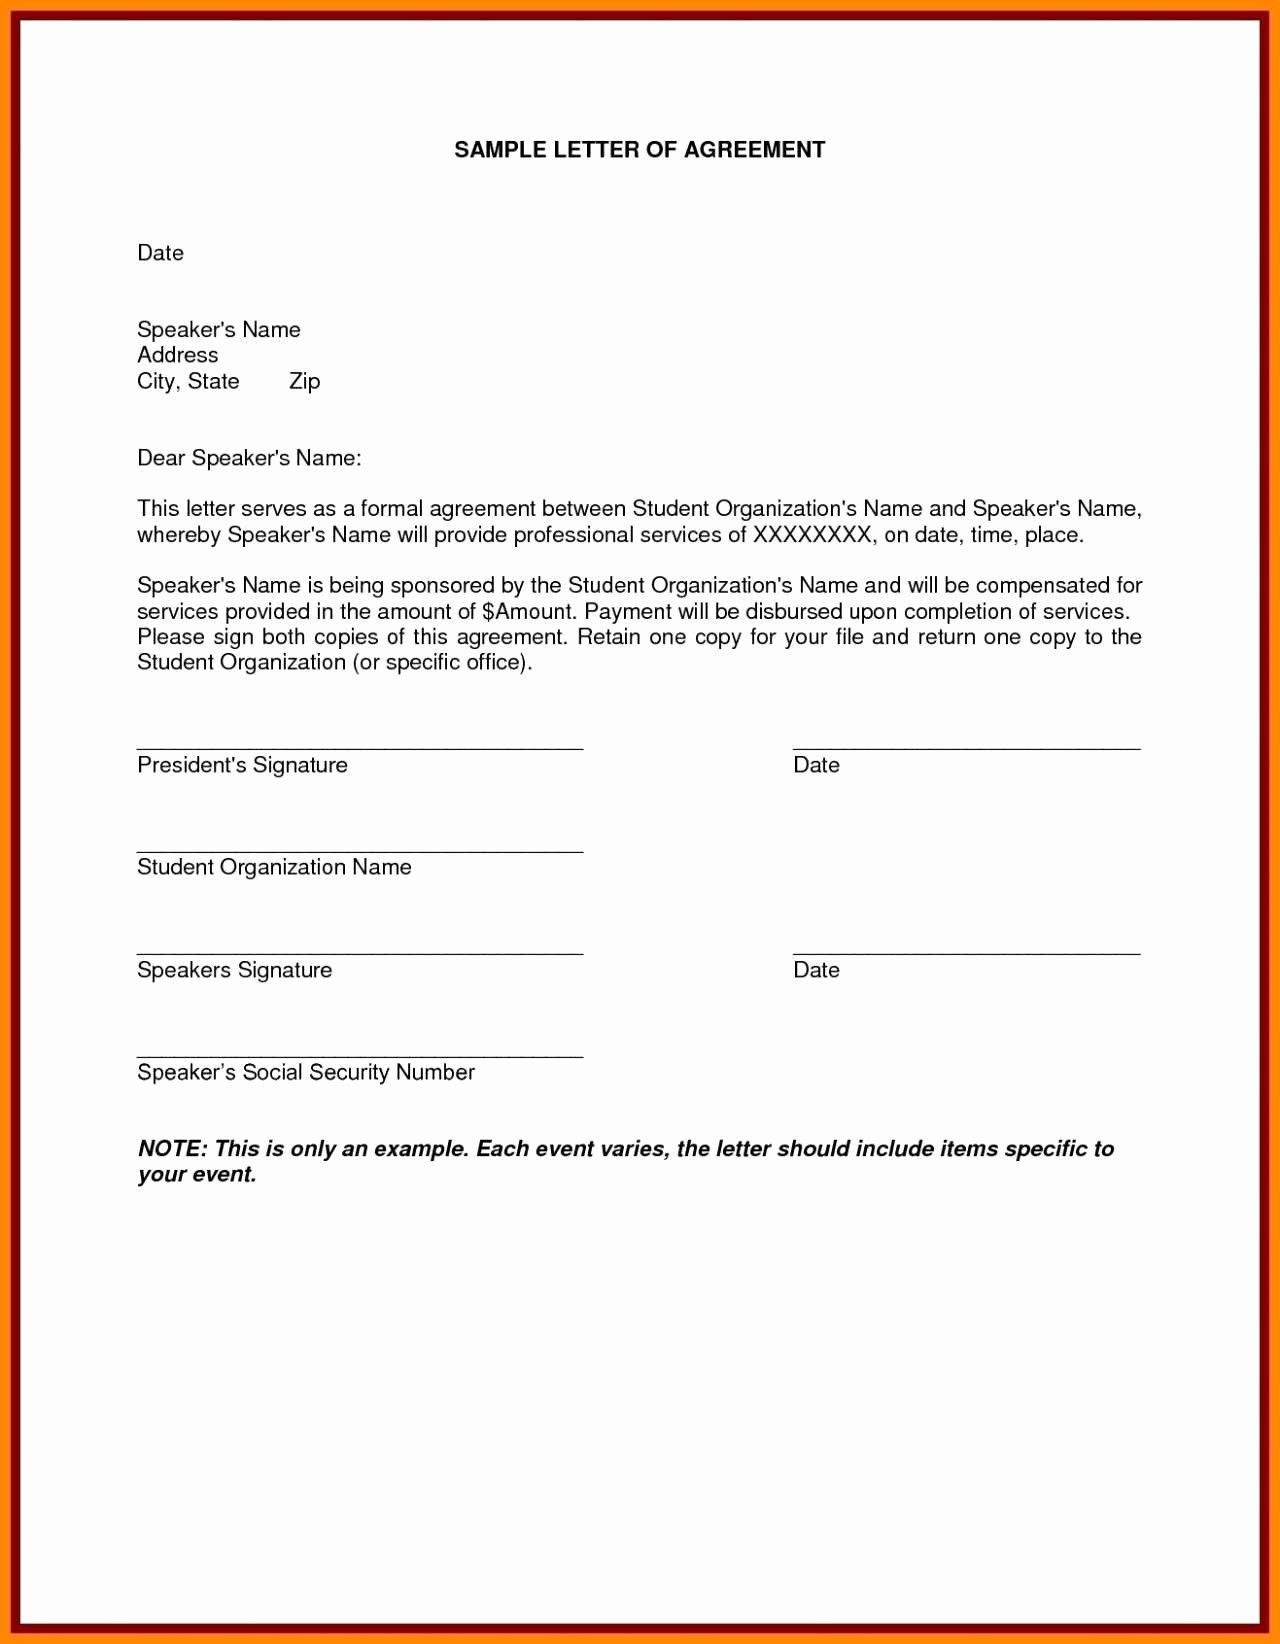 001 Awful Sample Letter Of Agreement Template Image  For A In Project PrepareFull